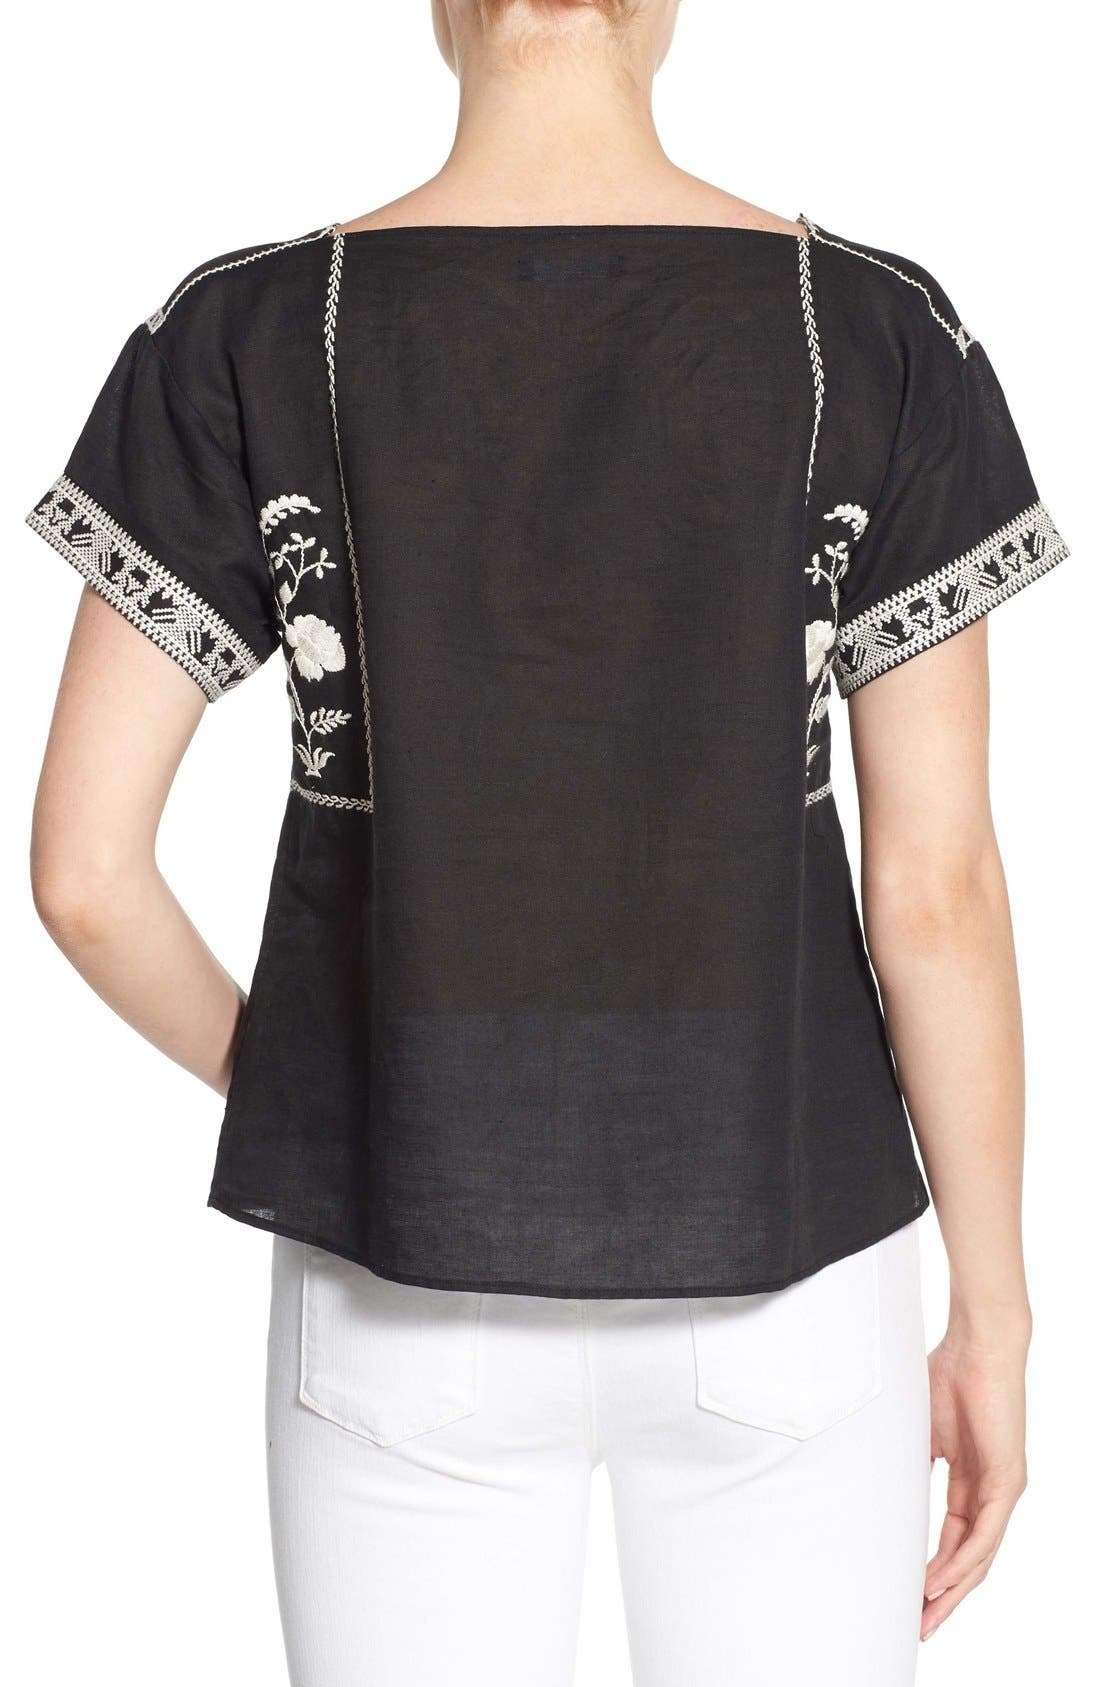 Wildfield Embroidered Top,                             Alternate thumbnail 5, color,                             001